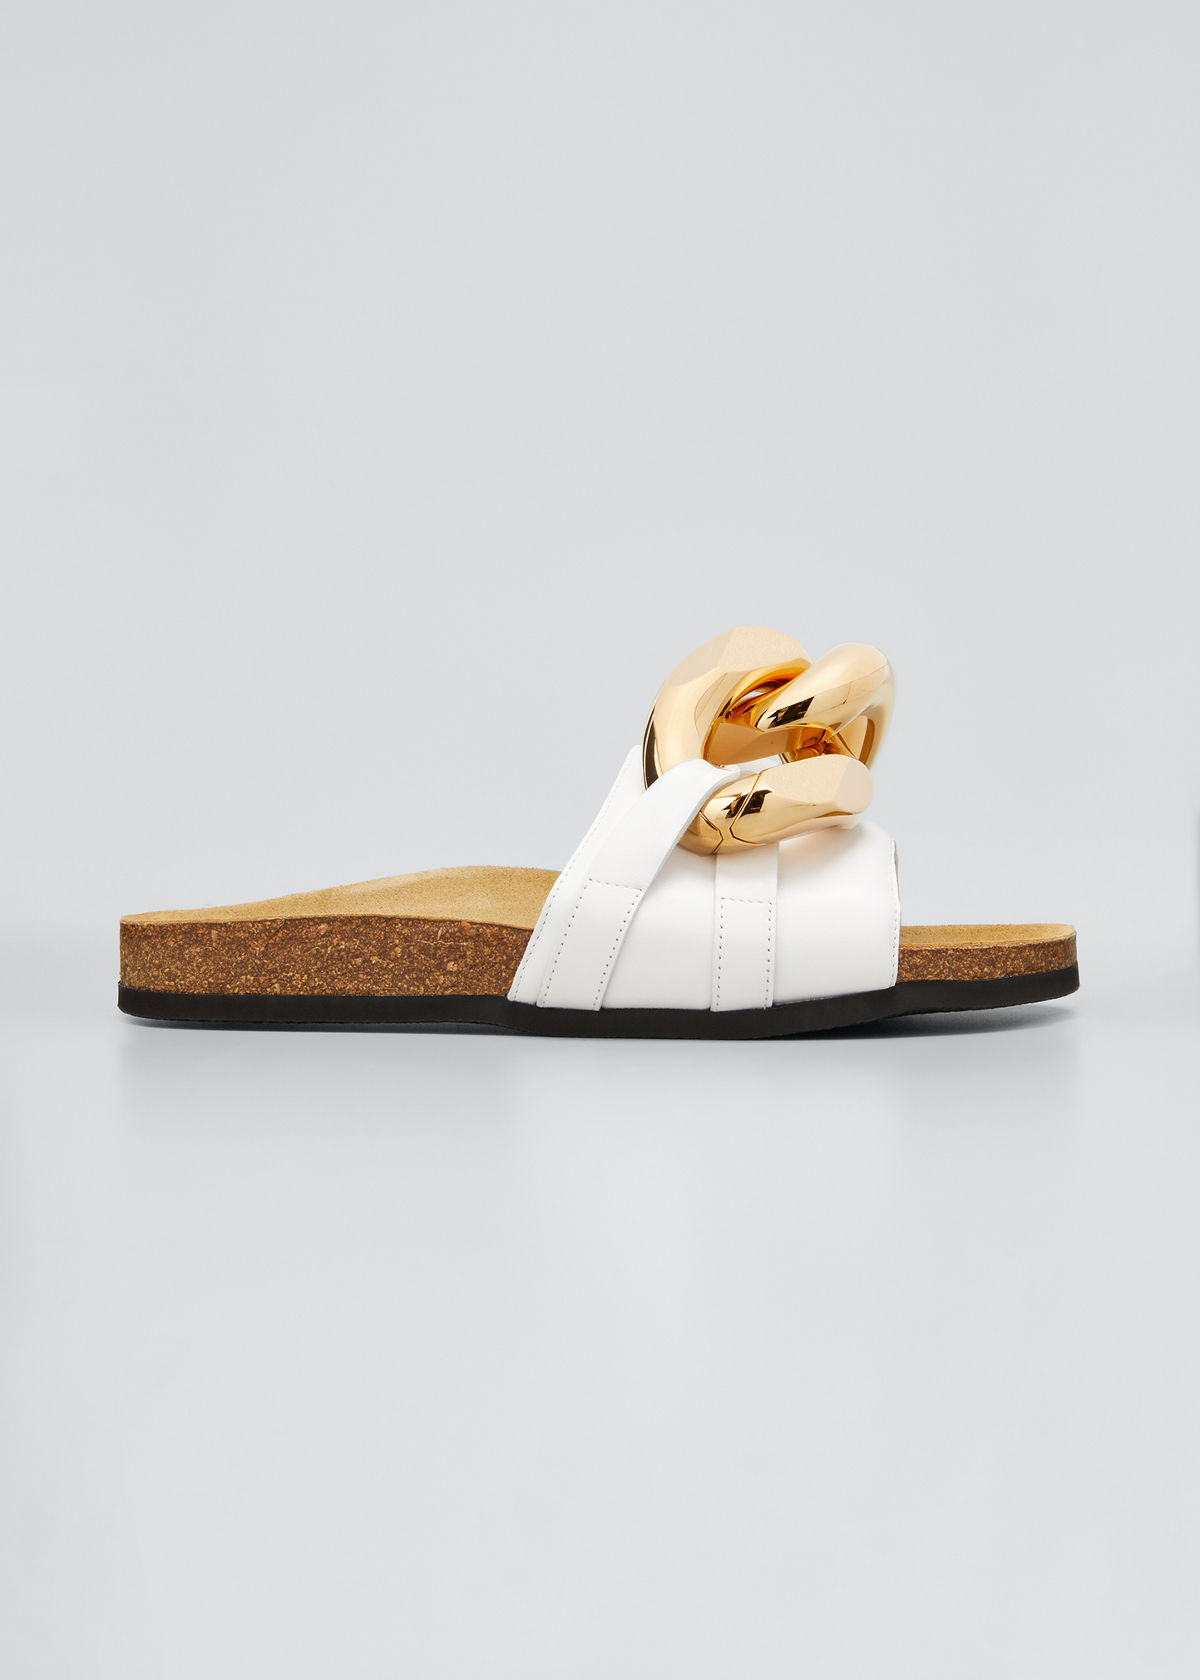 Jw Anderson Leathers LEATHER CHAIN SLIDE SANDALS